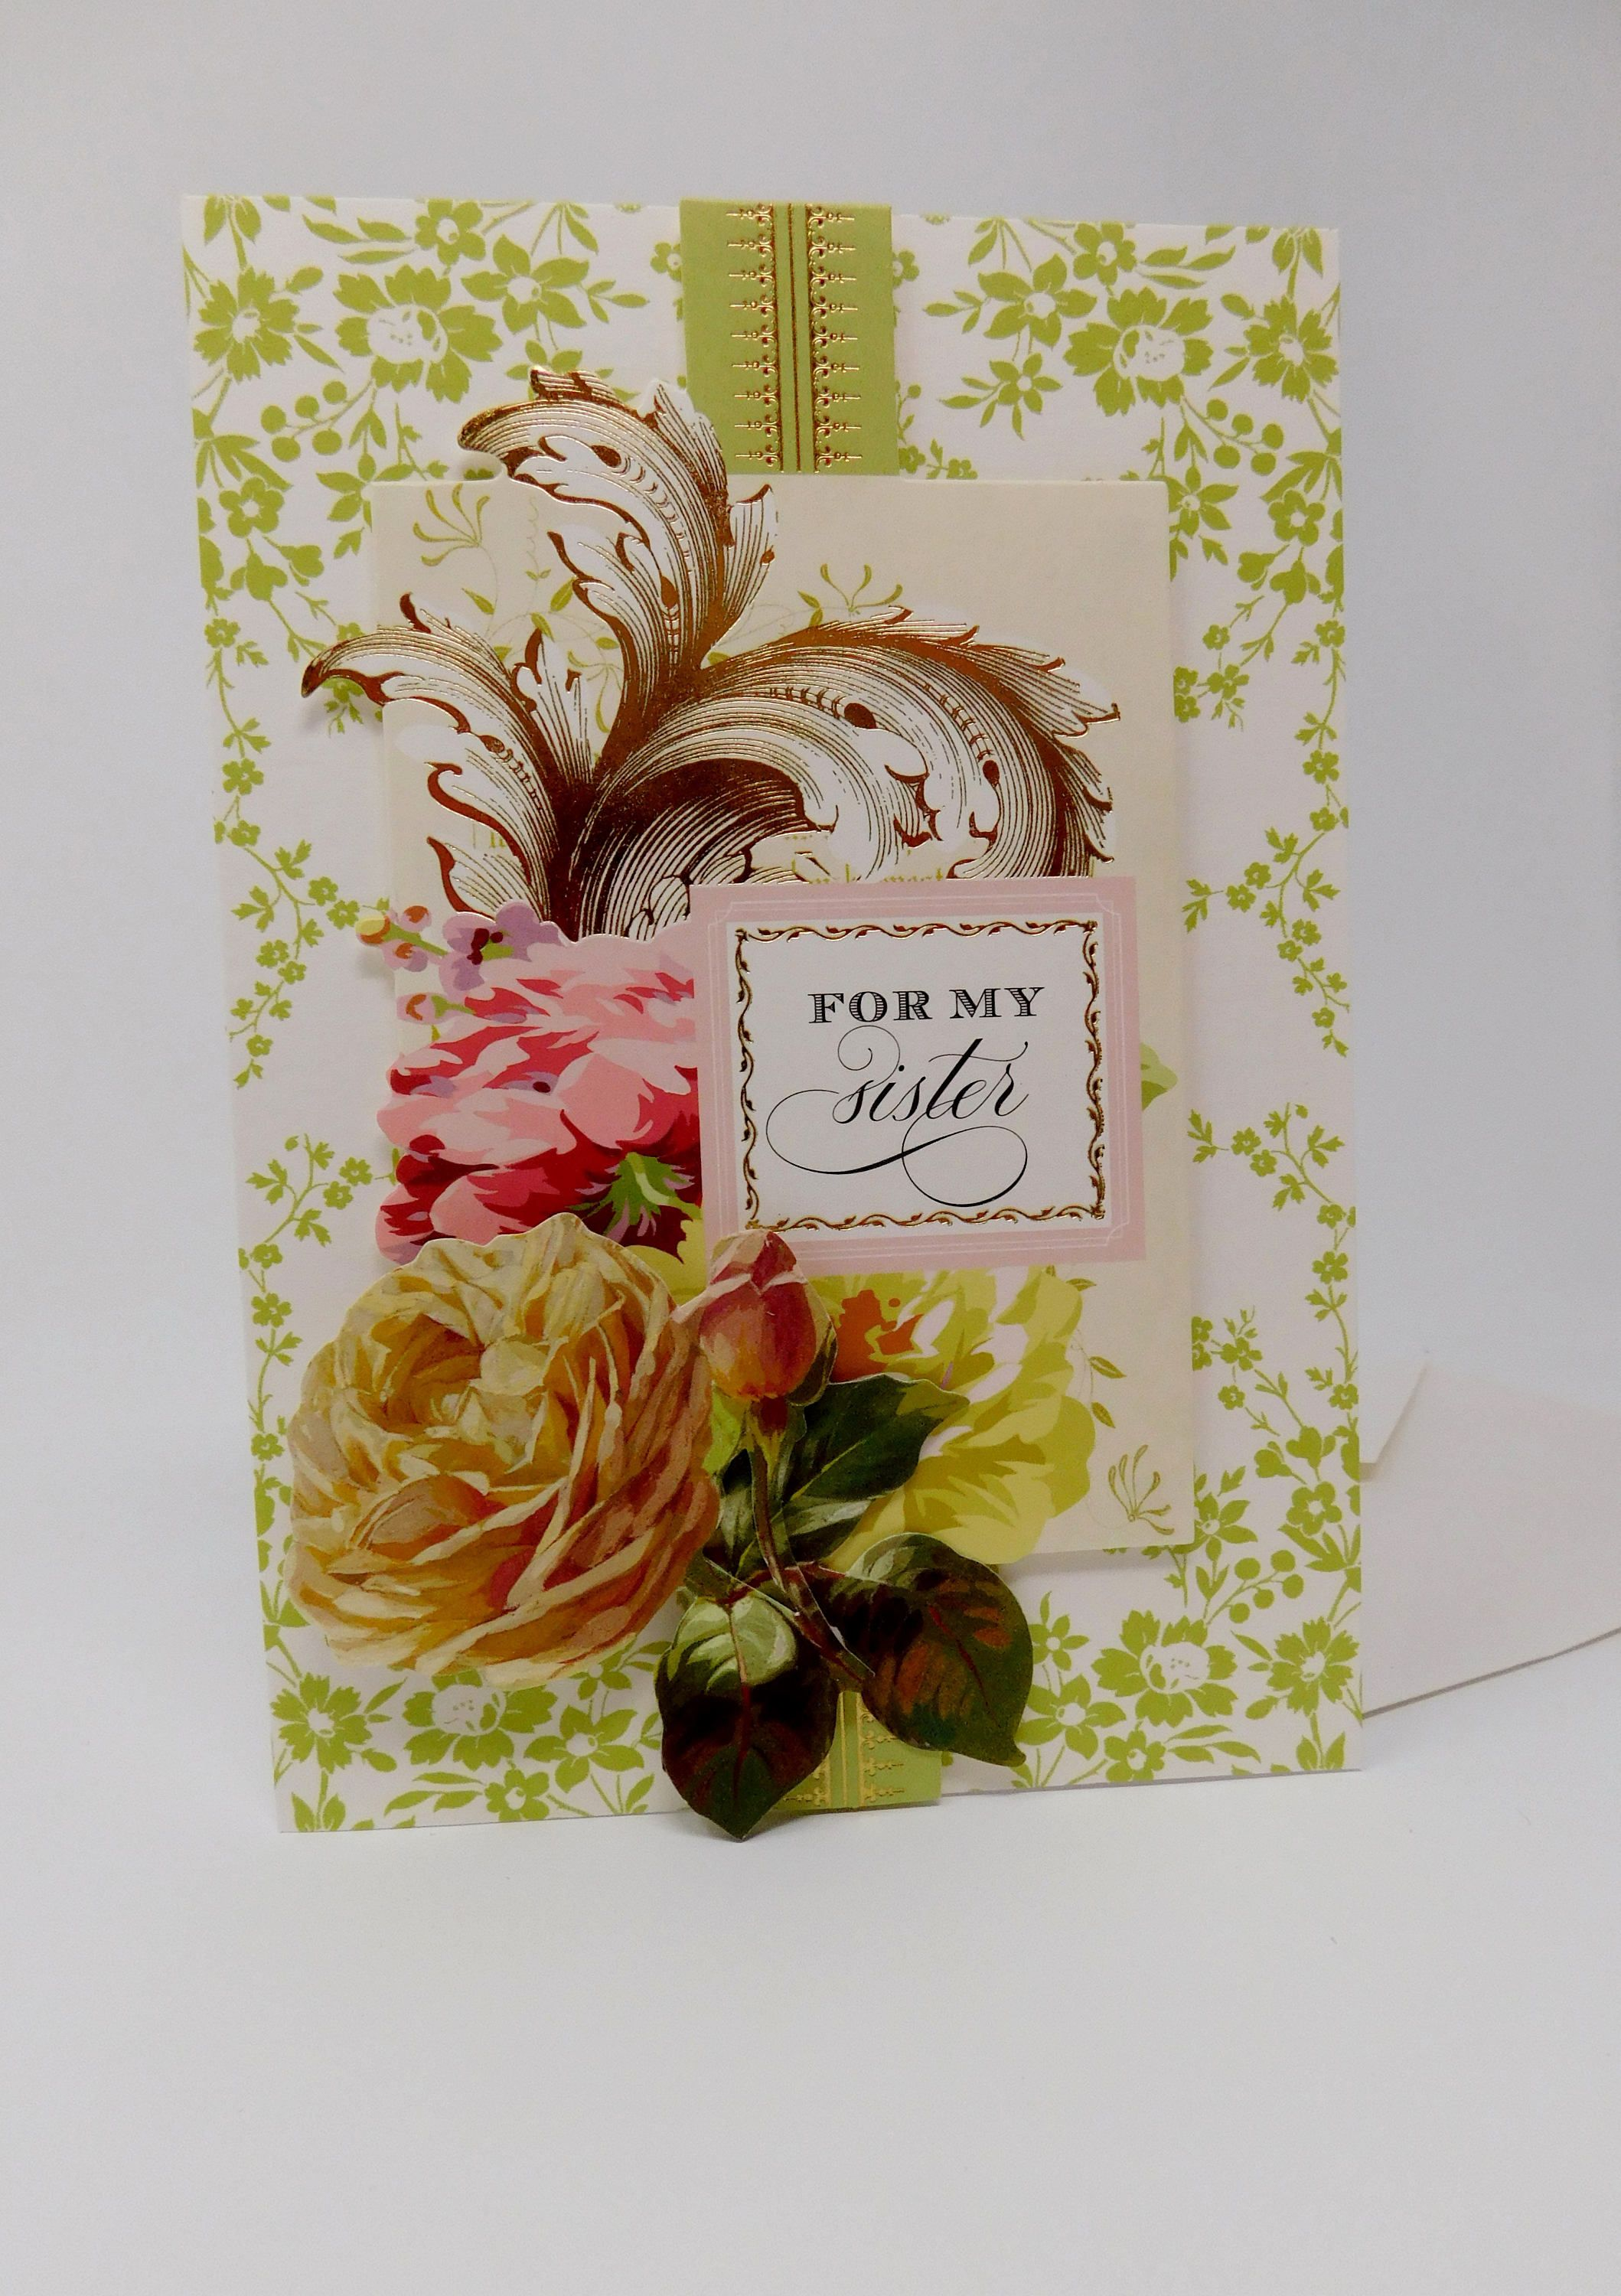 Handmade Multipurpose Greeting Card For My Sister Anna Griffin